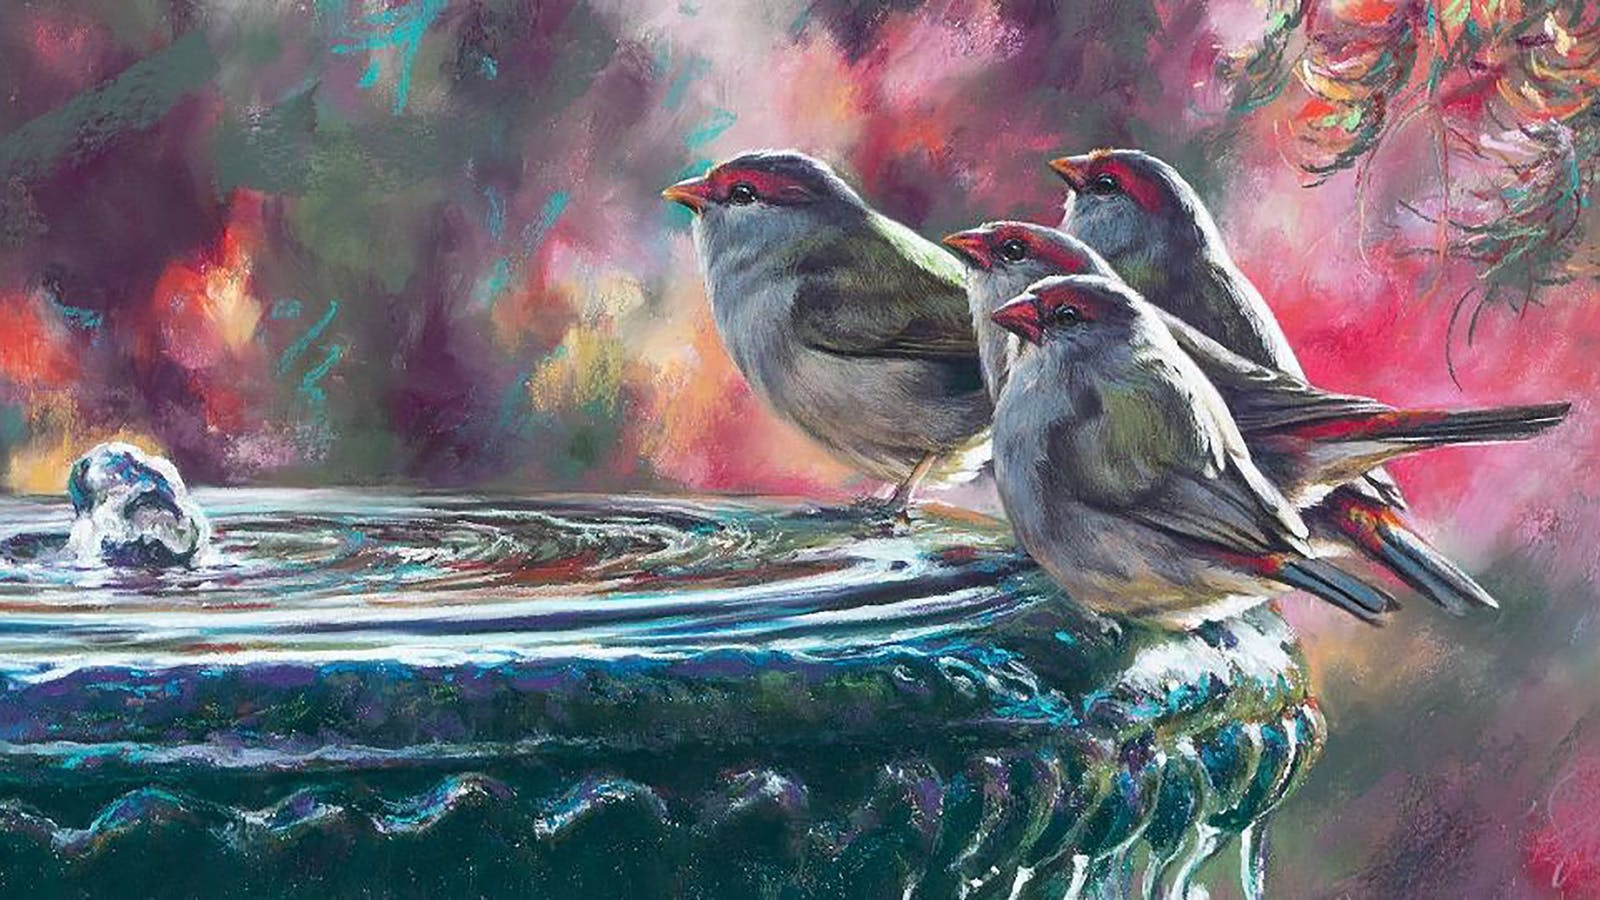 'Party time - firetail finches' - Pastel on Colourfix paper, Image size 76 X 30 cm